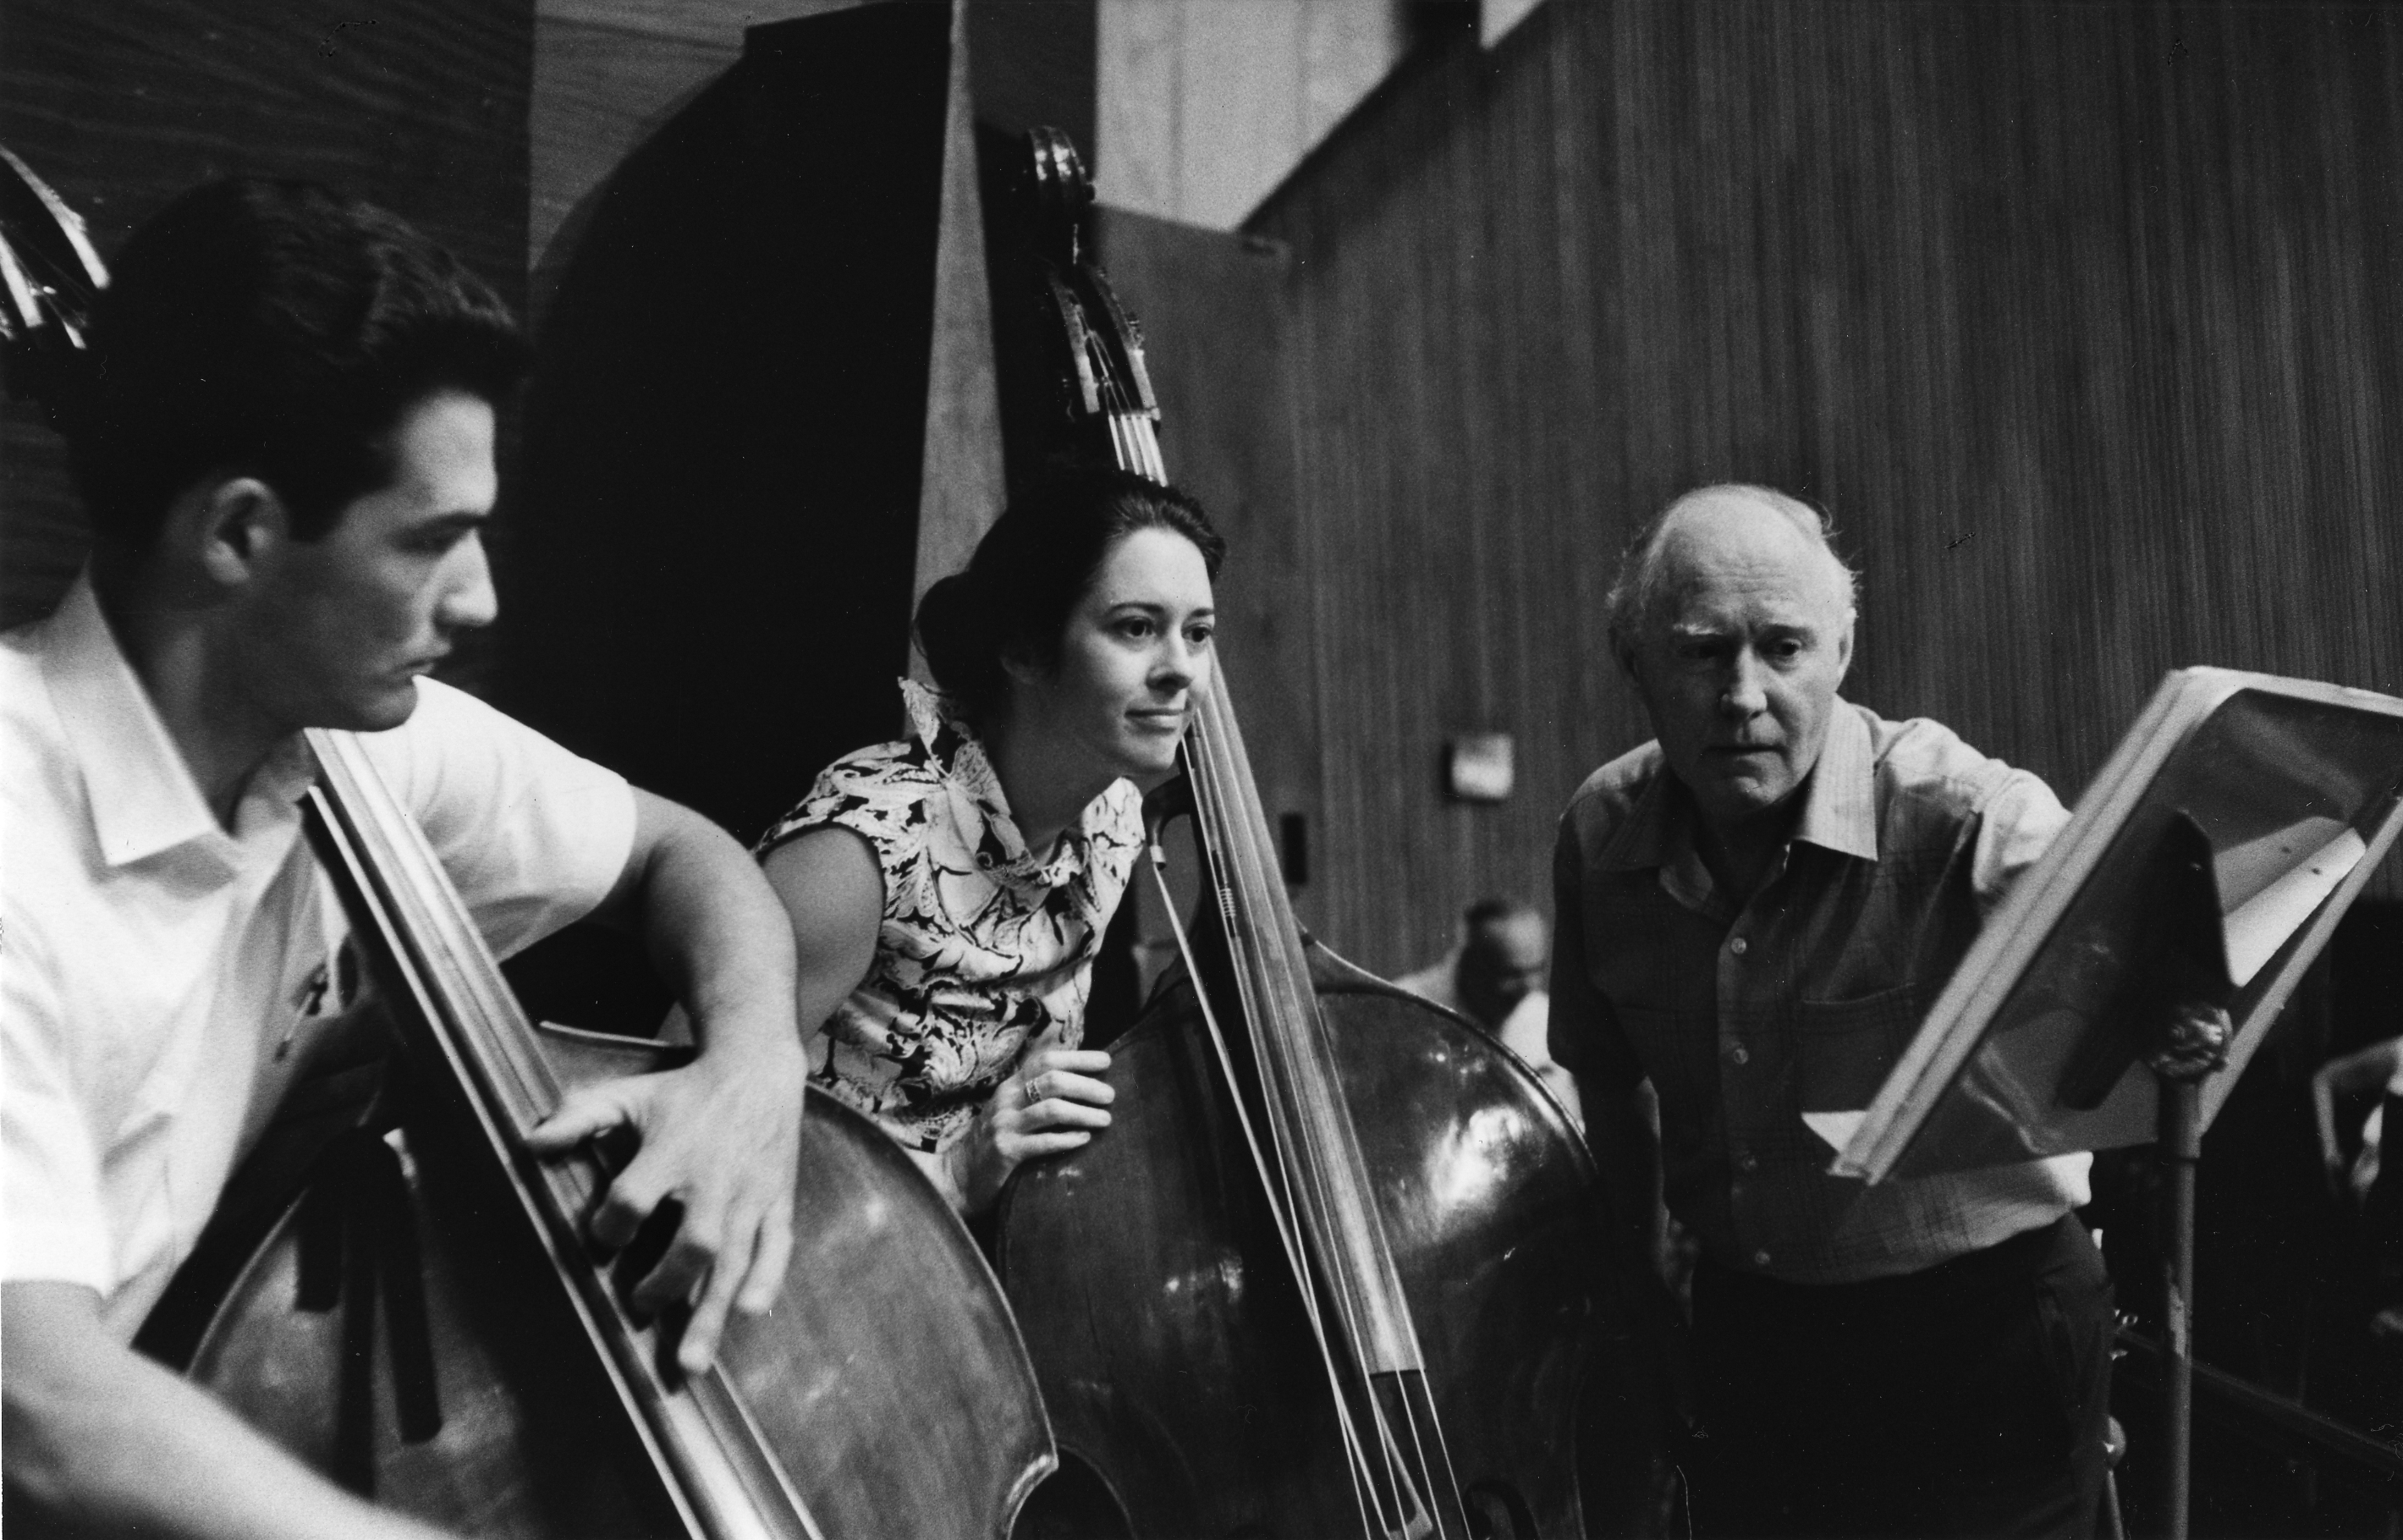 Philharmonic bassists in 1970